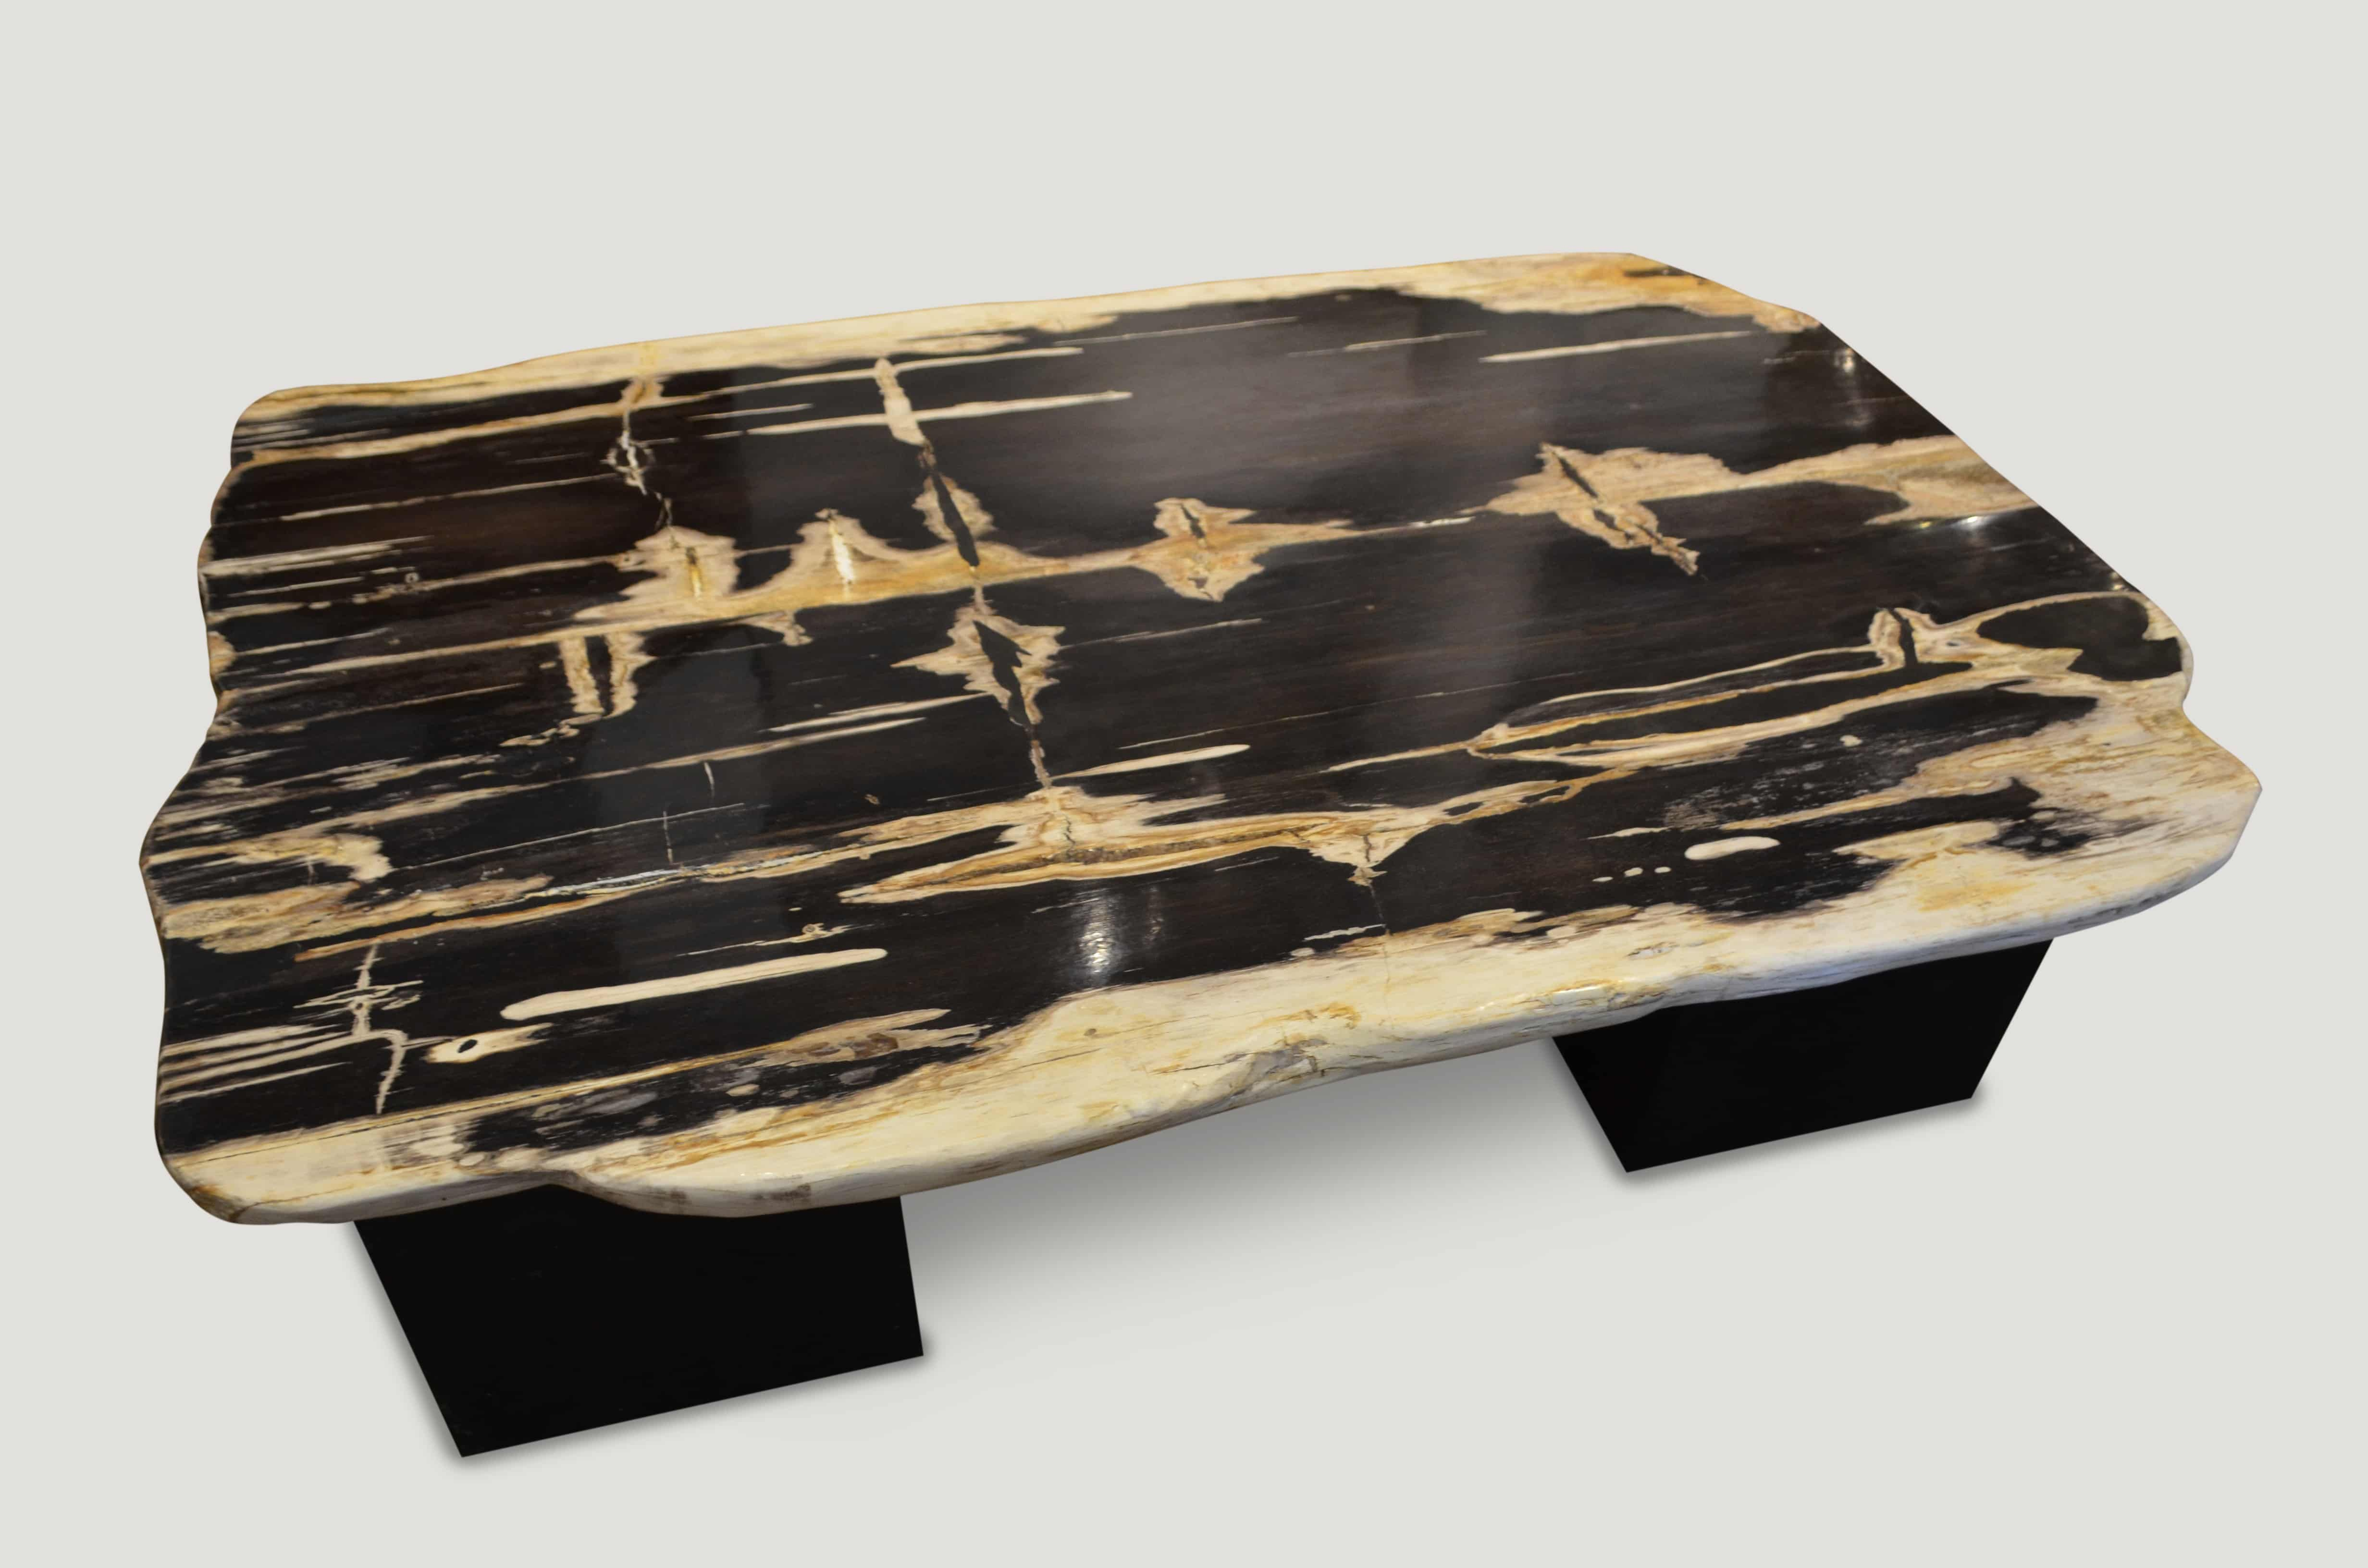 High Quality Petrified Wood Side Table With Images Petrified Wood Side Table Wood Wood